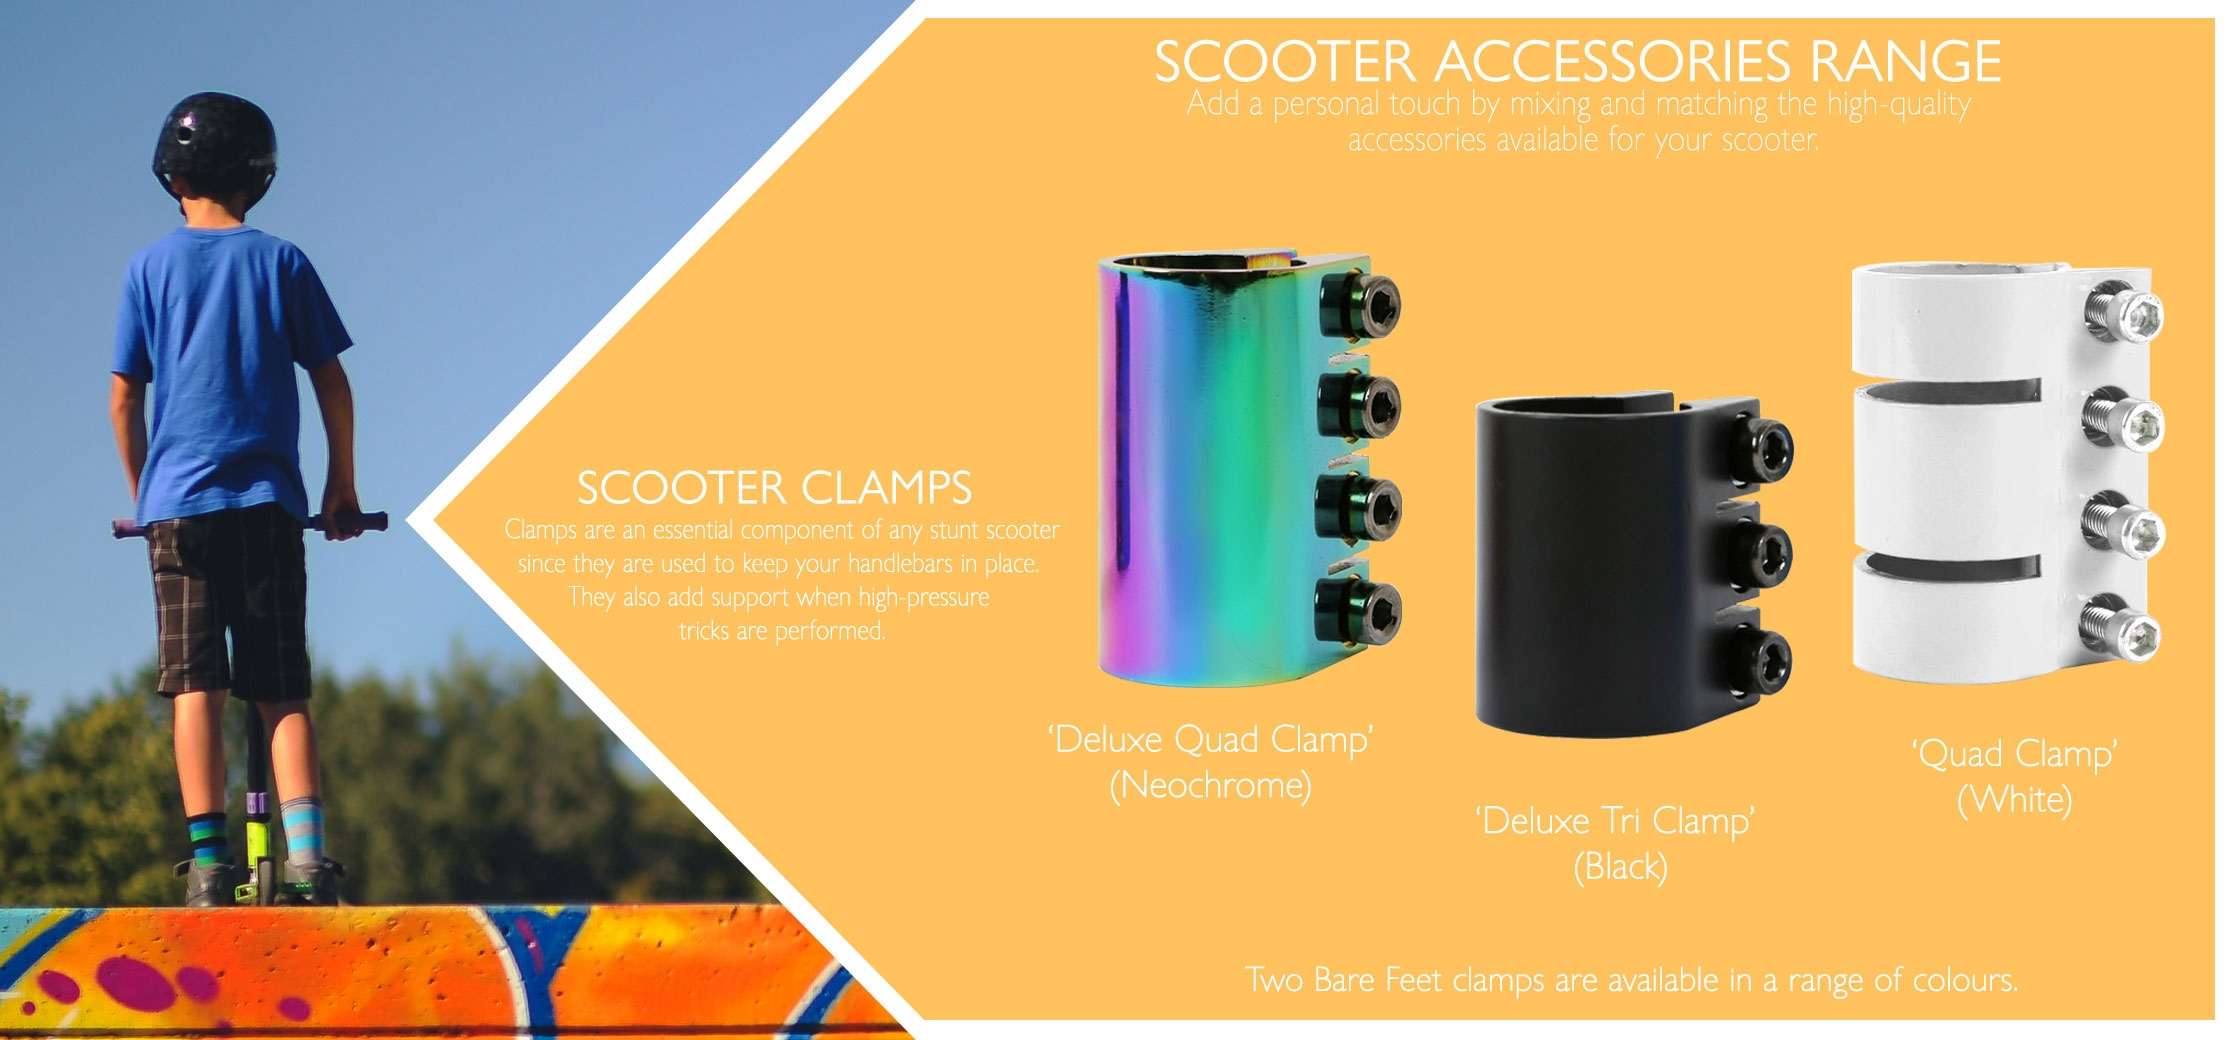 Scooter tri clamps and quad clamps